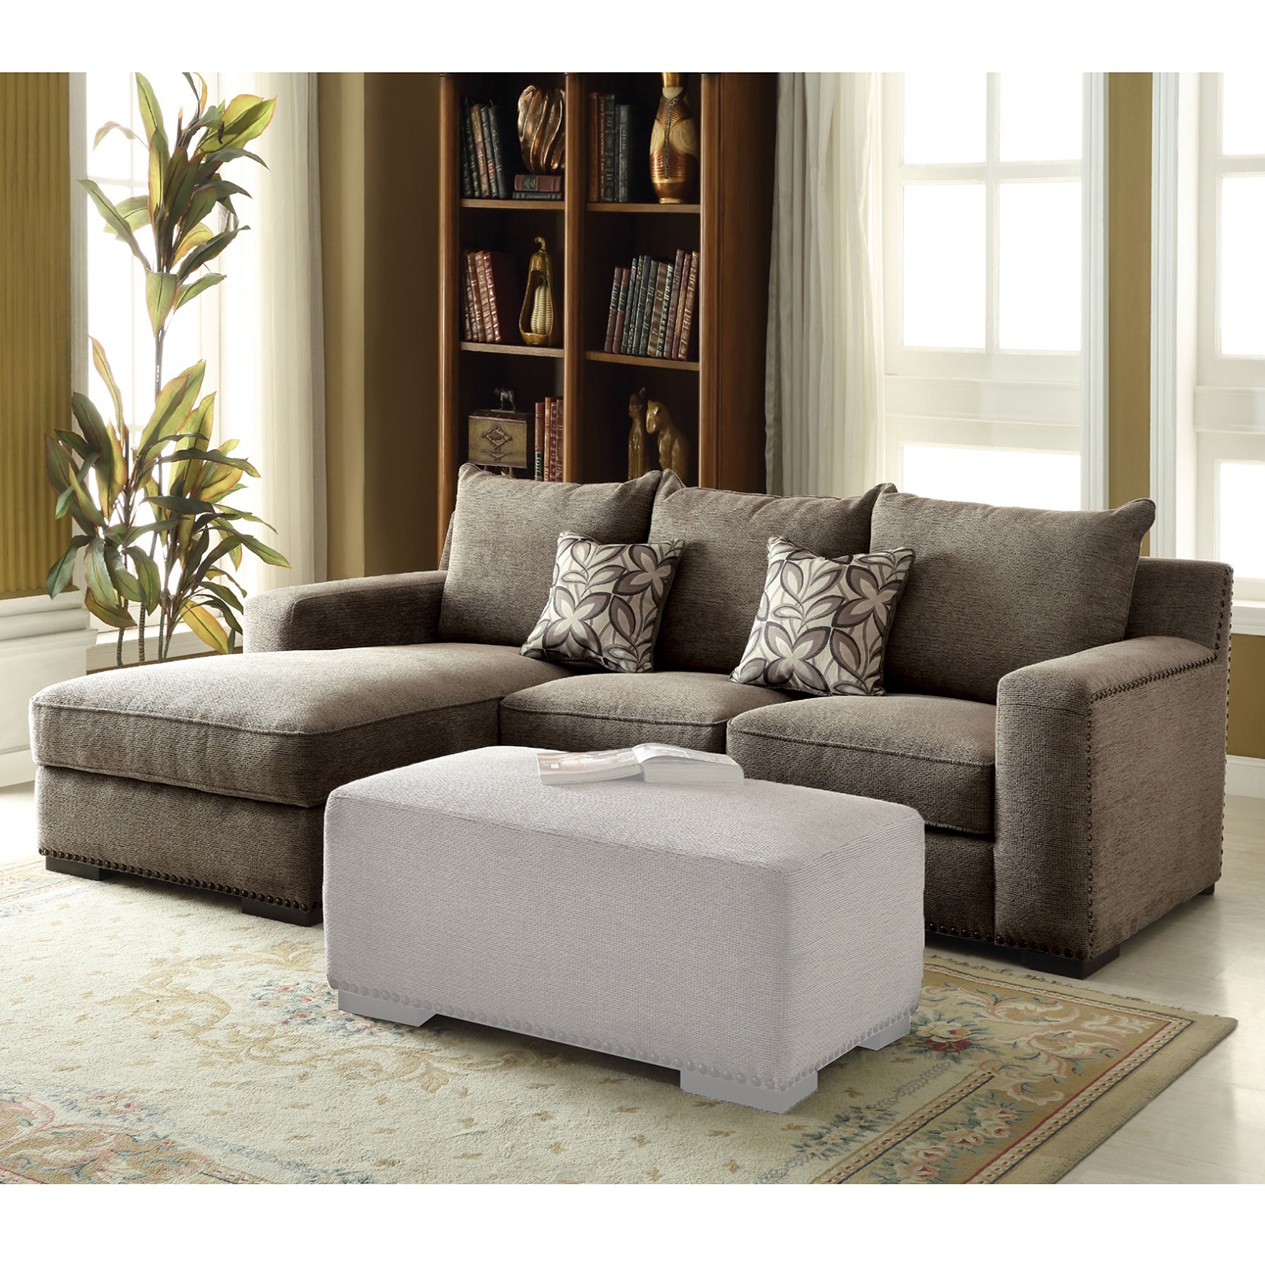 Sectional Sofa And Ottoman With Gray Chenille Fabric Finish